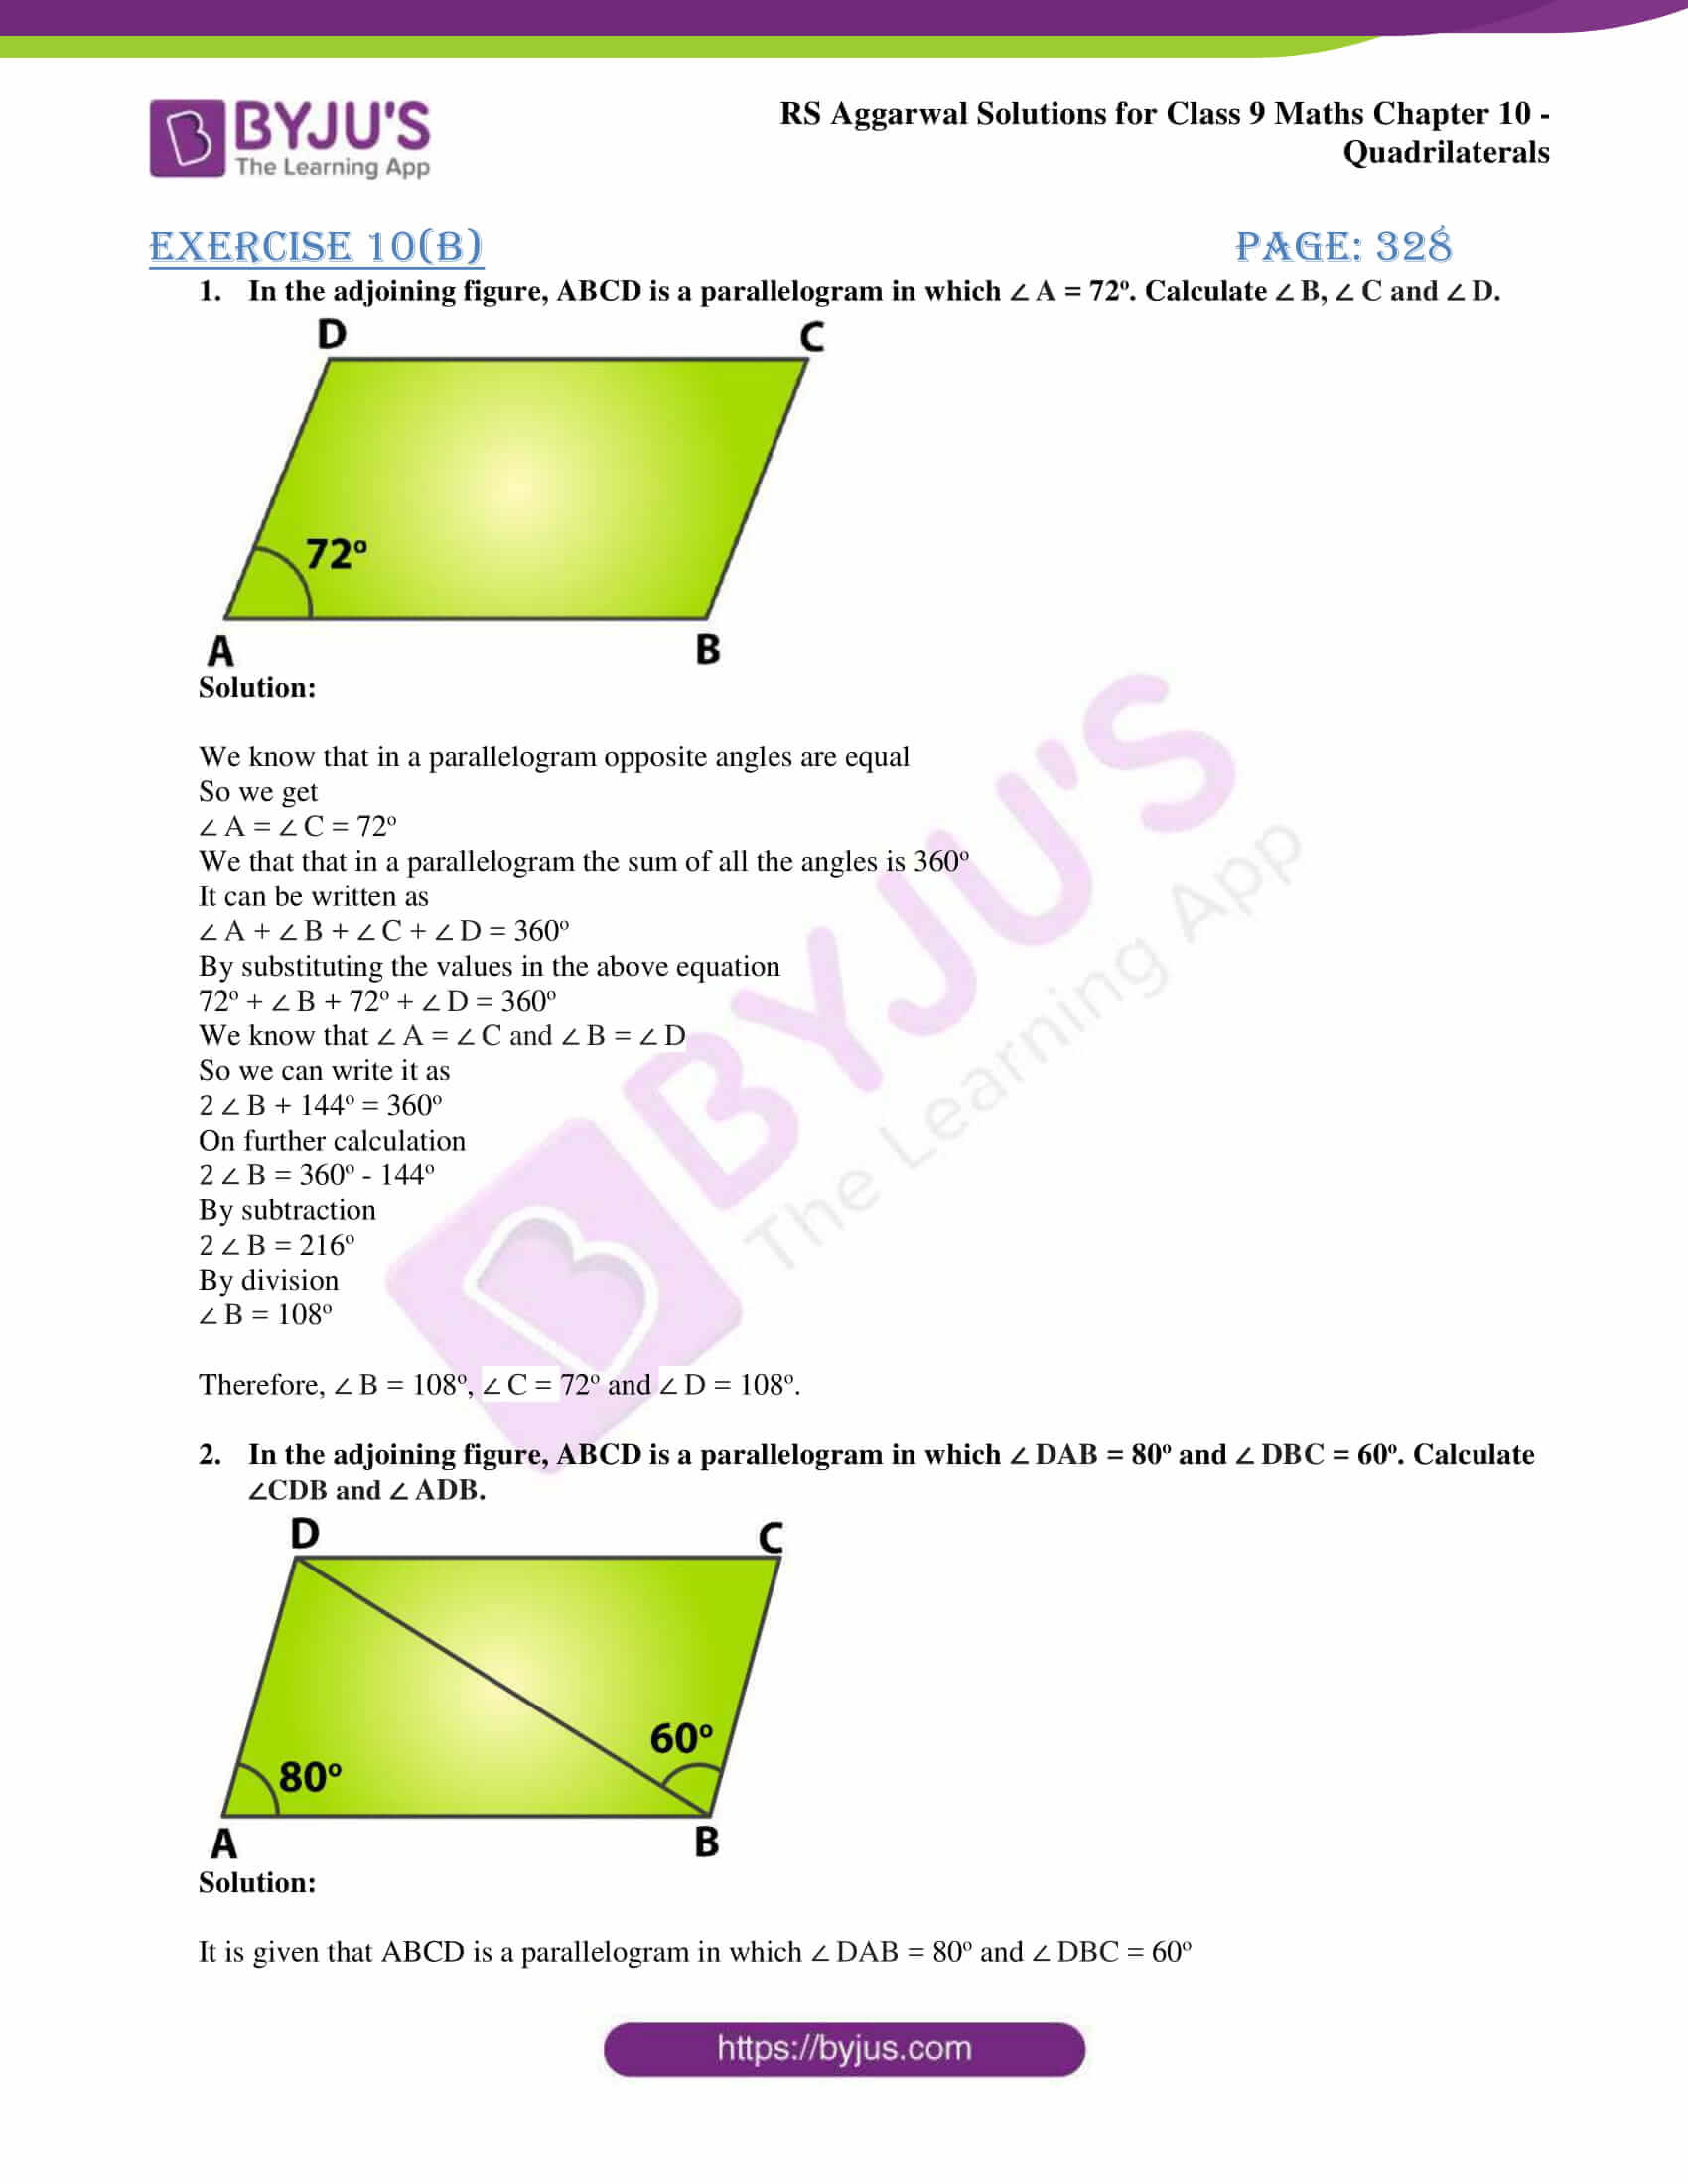 rs aggarwal solution class 9 maths chapter 10B